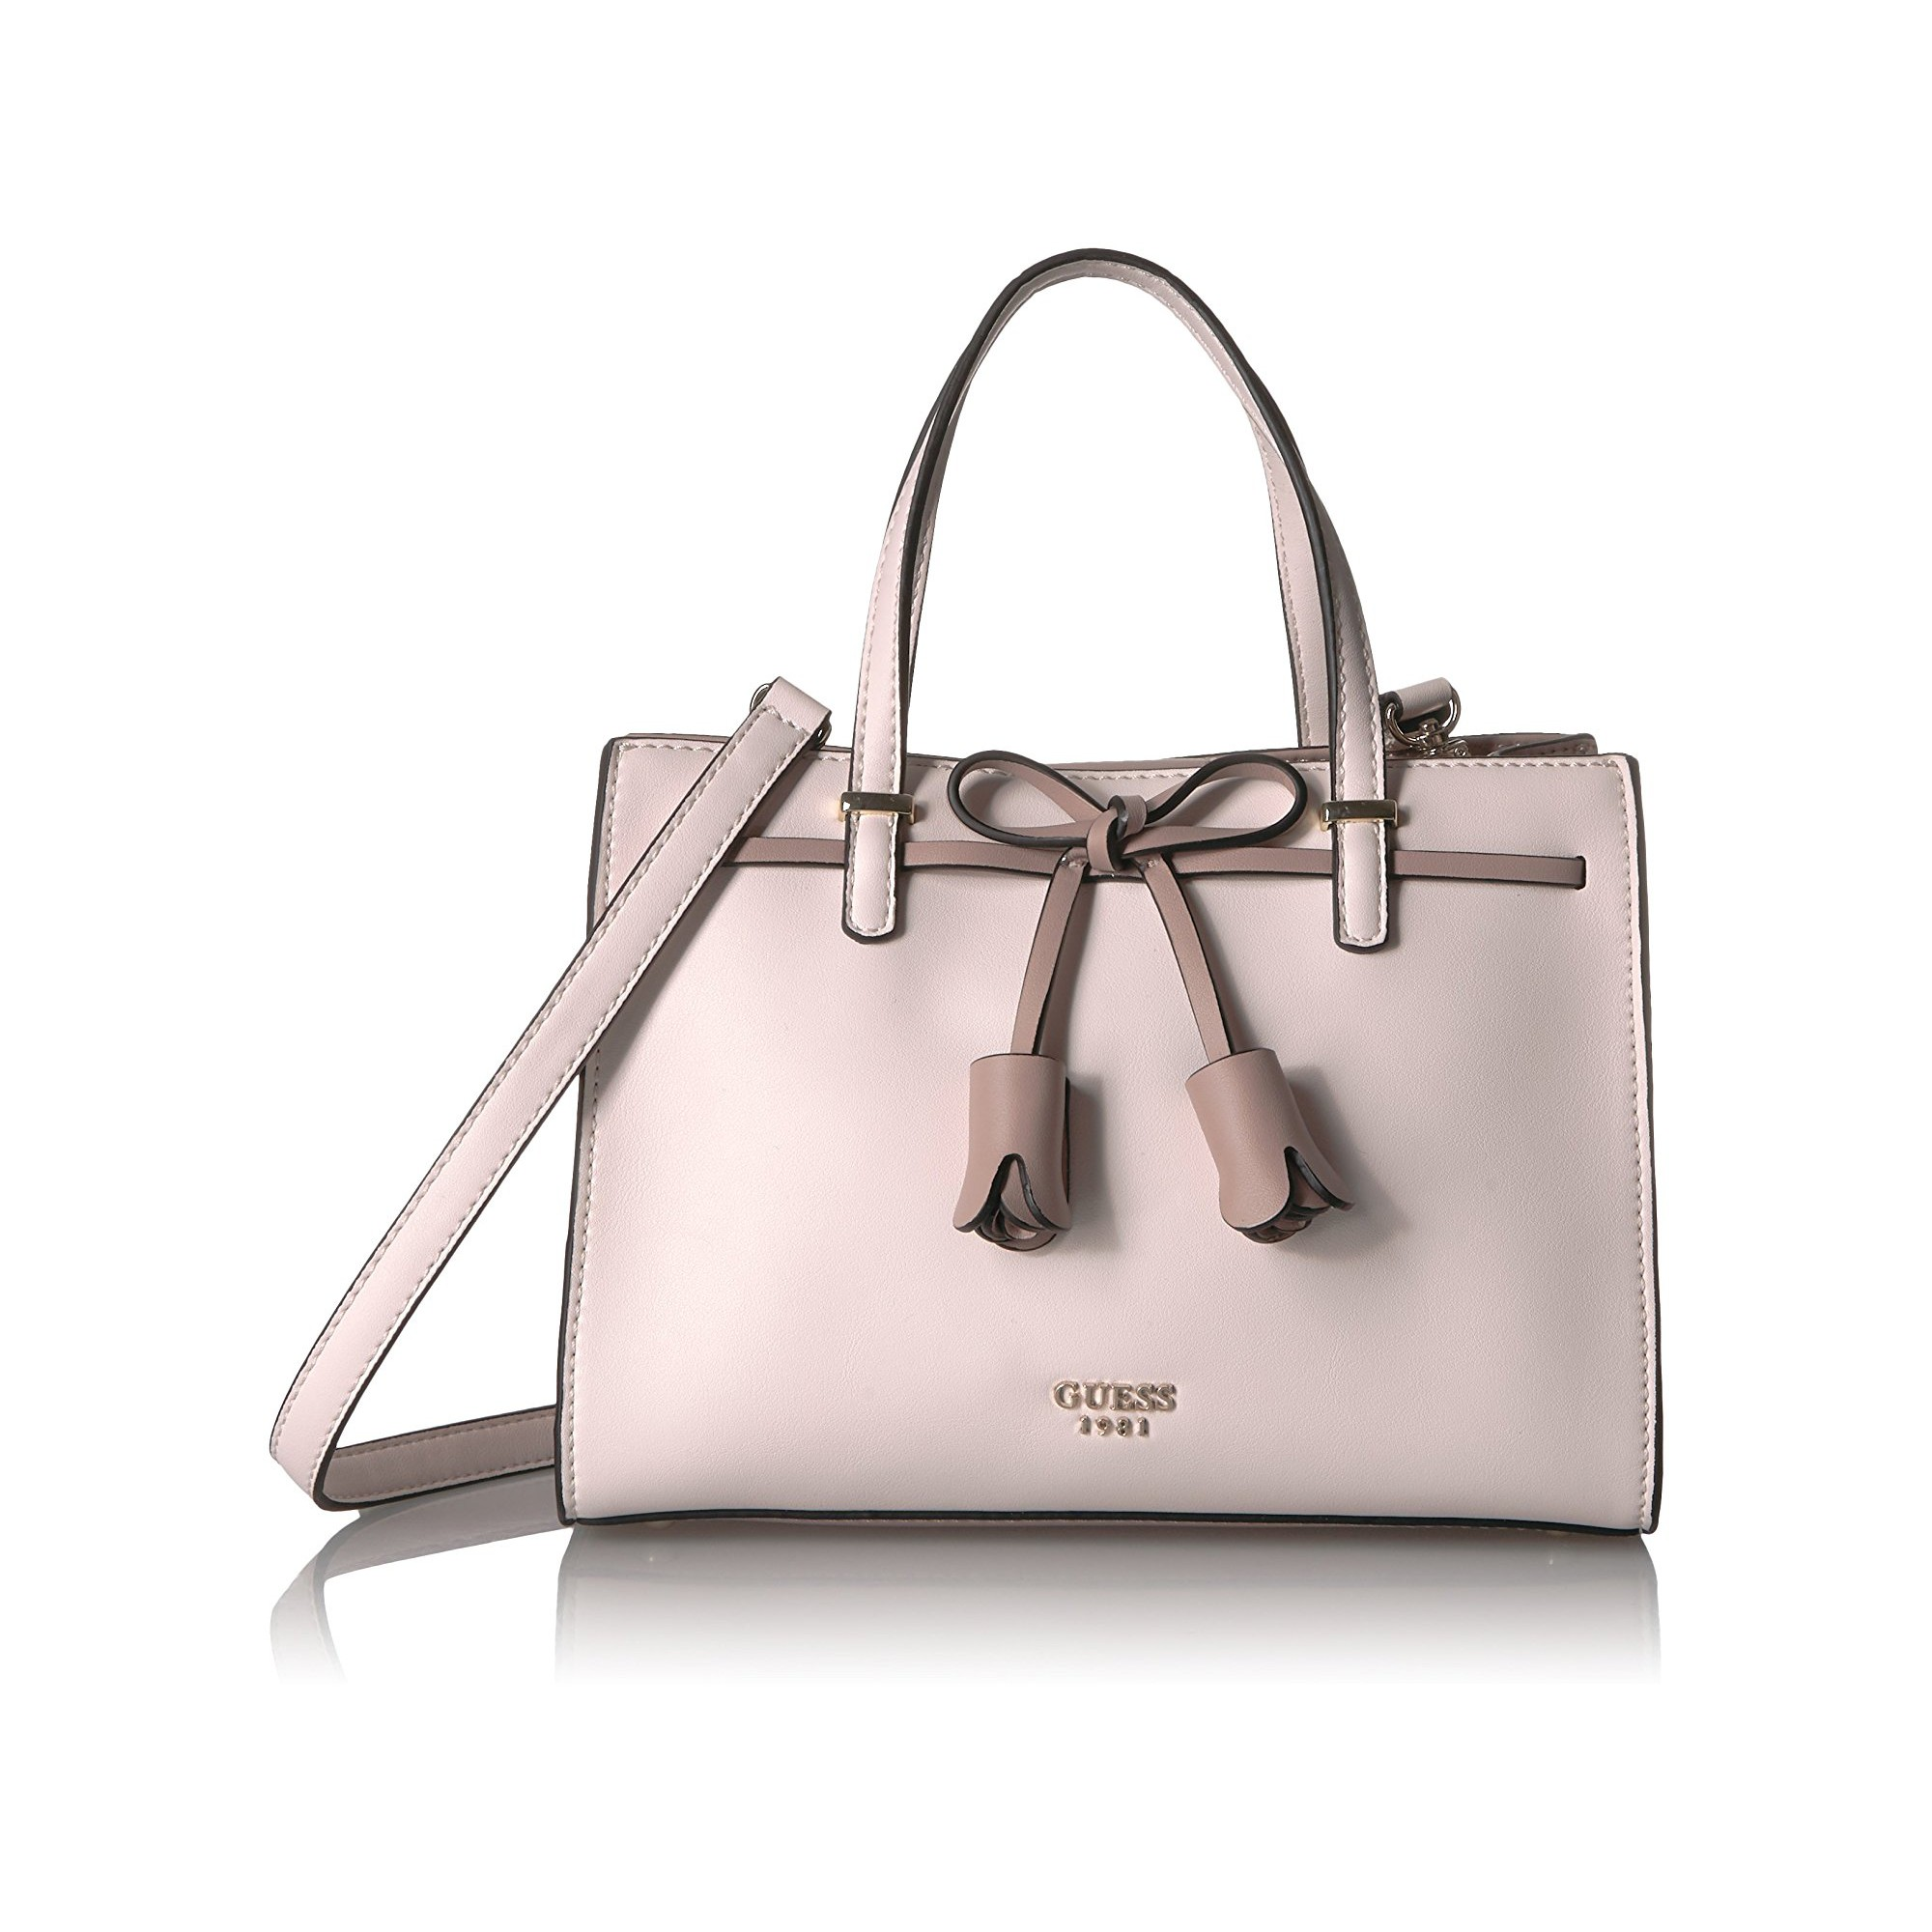 Leila Small À Clair Guess Main Rose Girlfriend Sac wuPOlikXZT